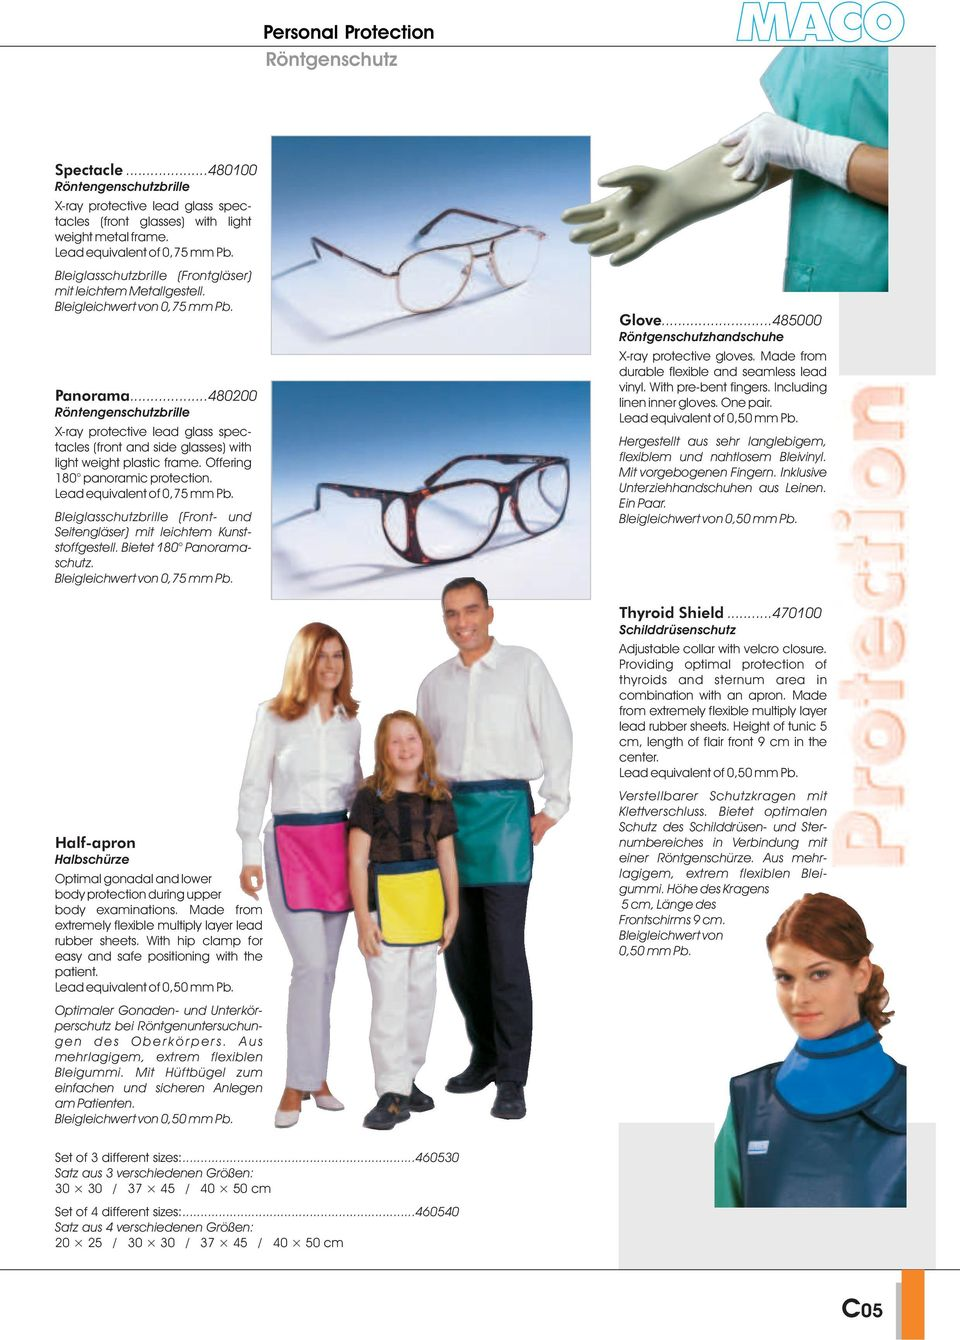 ..480200 Röntengenschutzbrille X-ray protective lead glass spectacles (front and side glasses) with light weight plastic frame. Offering 180 panoramic protection. Lead equivalent of 0,75 mm Pb.